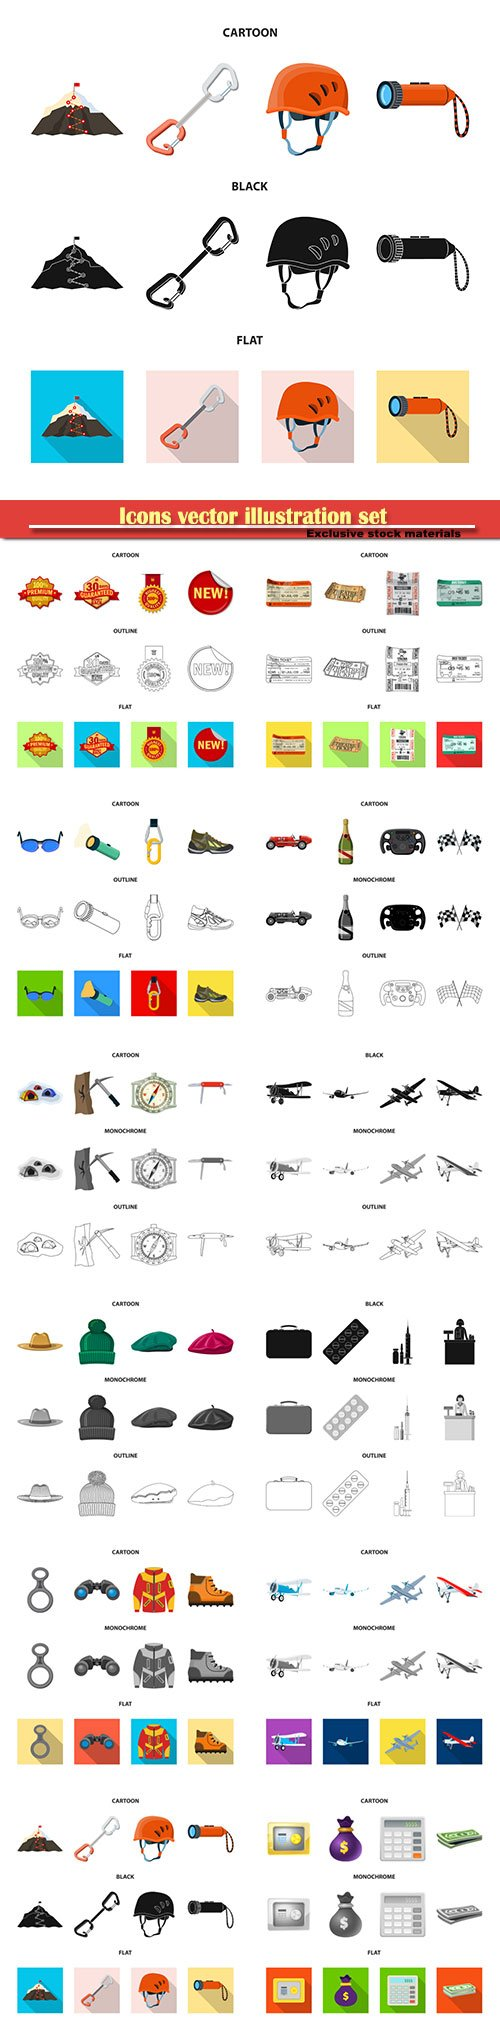 Icons vector illustration set # 10